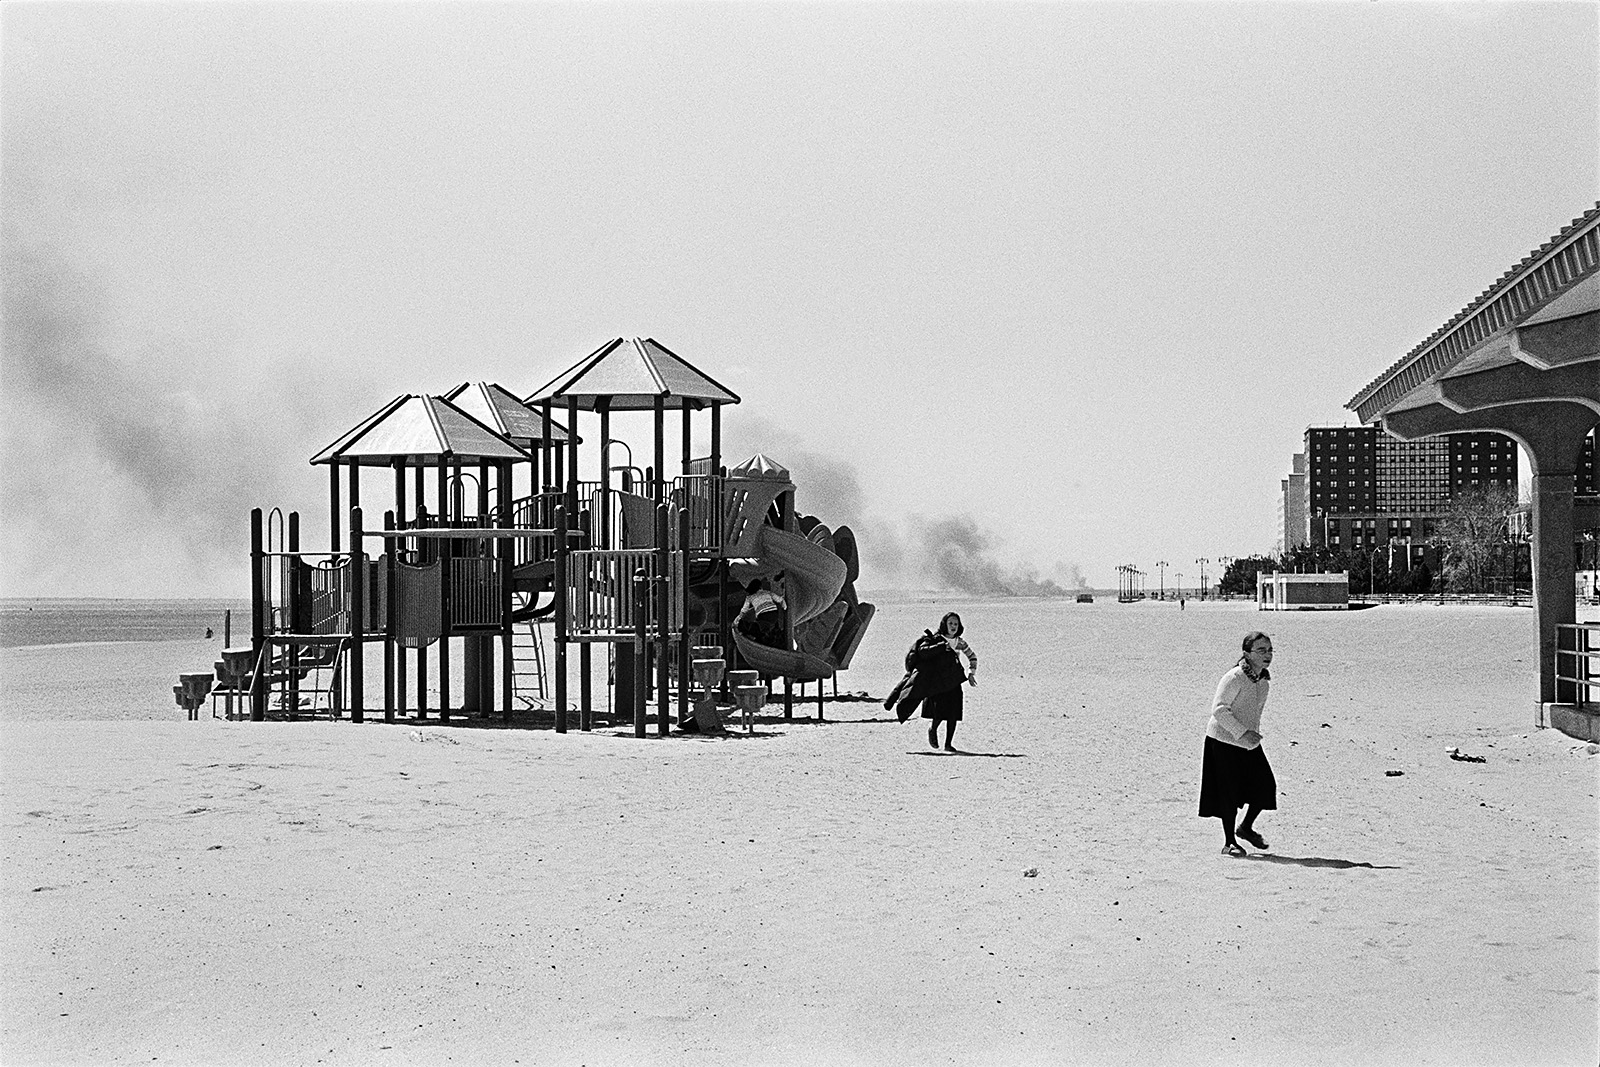 Beach, Coney Island, New York, 2009